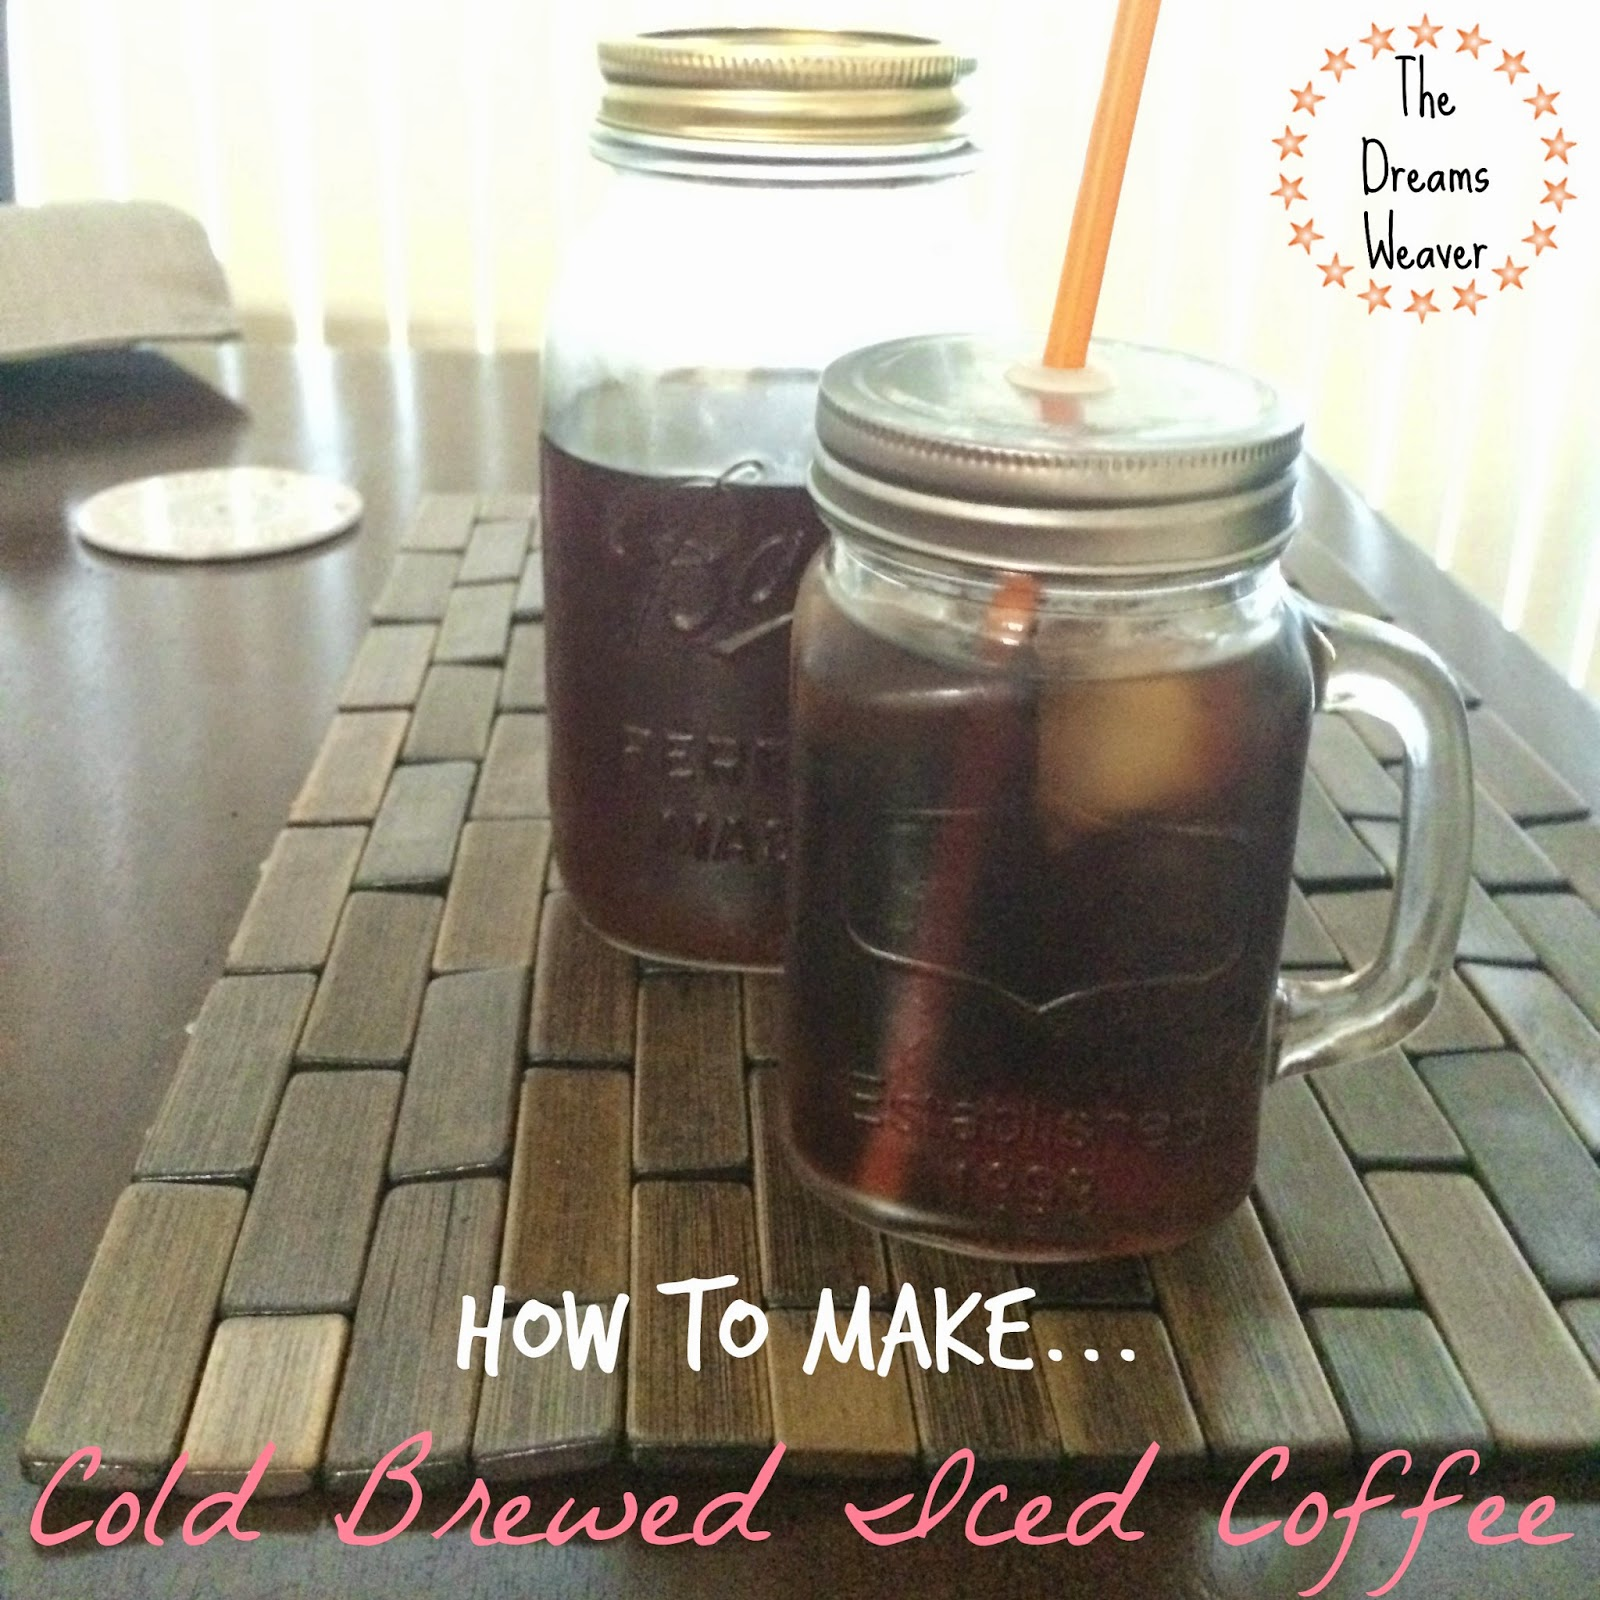 How To Make Cold Brewed Iced Coffee~ The Dreams Weaver